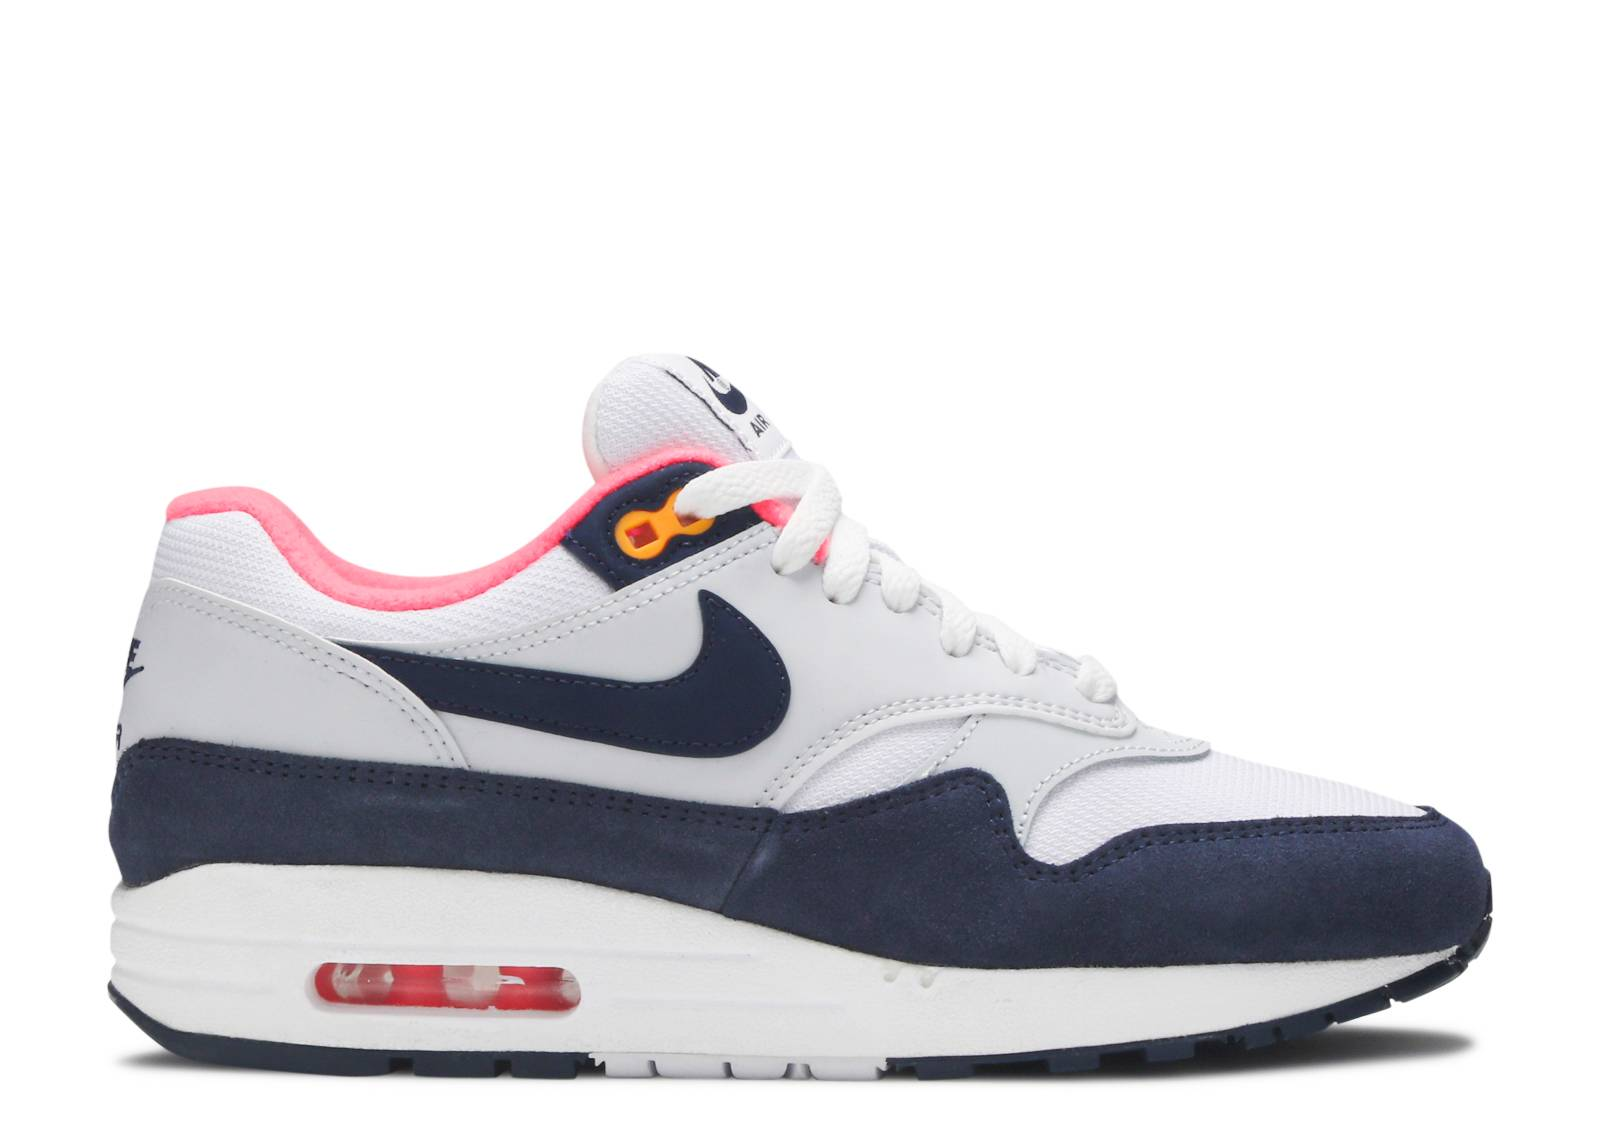 Details about Womens Nike Air Max 1 Midnight Navy Blue White Sneaker Shoe 319986 116 Size 9